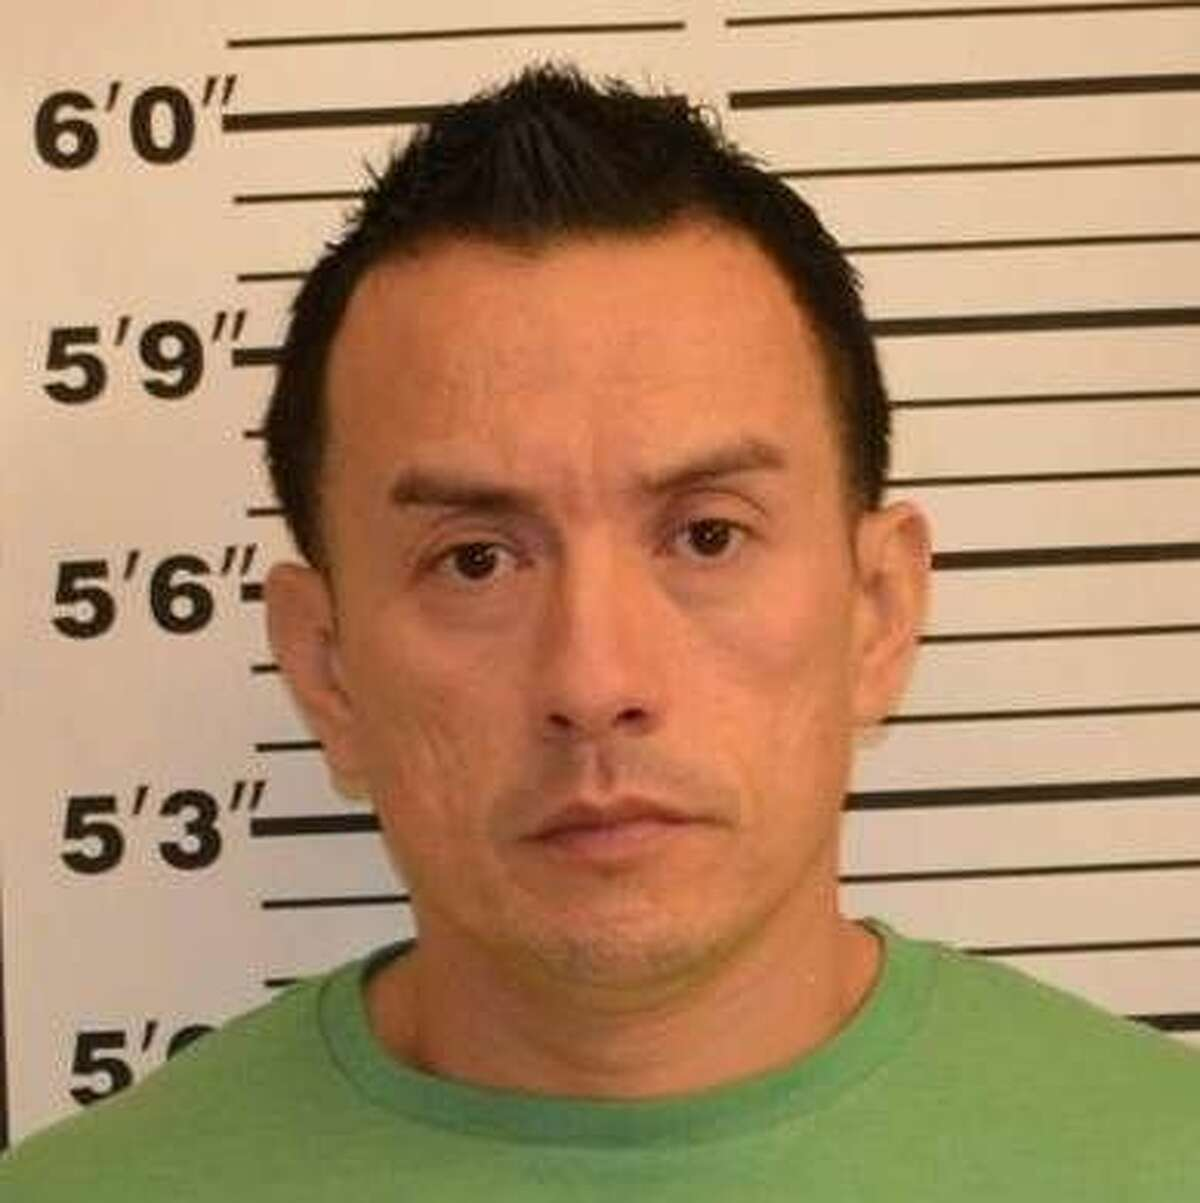 Guillermo Arriaga, a 38-year-old boy's basketball coach at Donna High School and physical education teacher at Caceres Elementary School, has been charged with improper relationship between an educator and student.